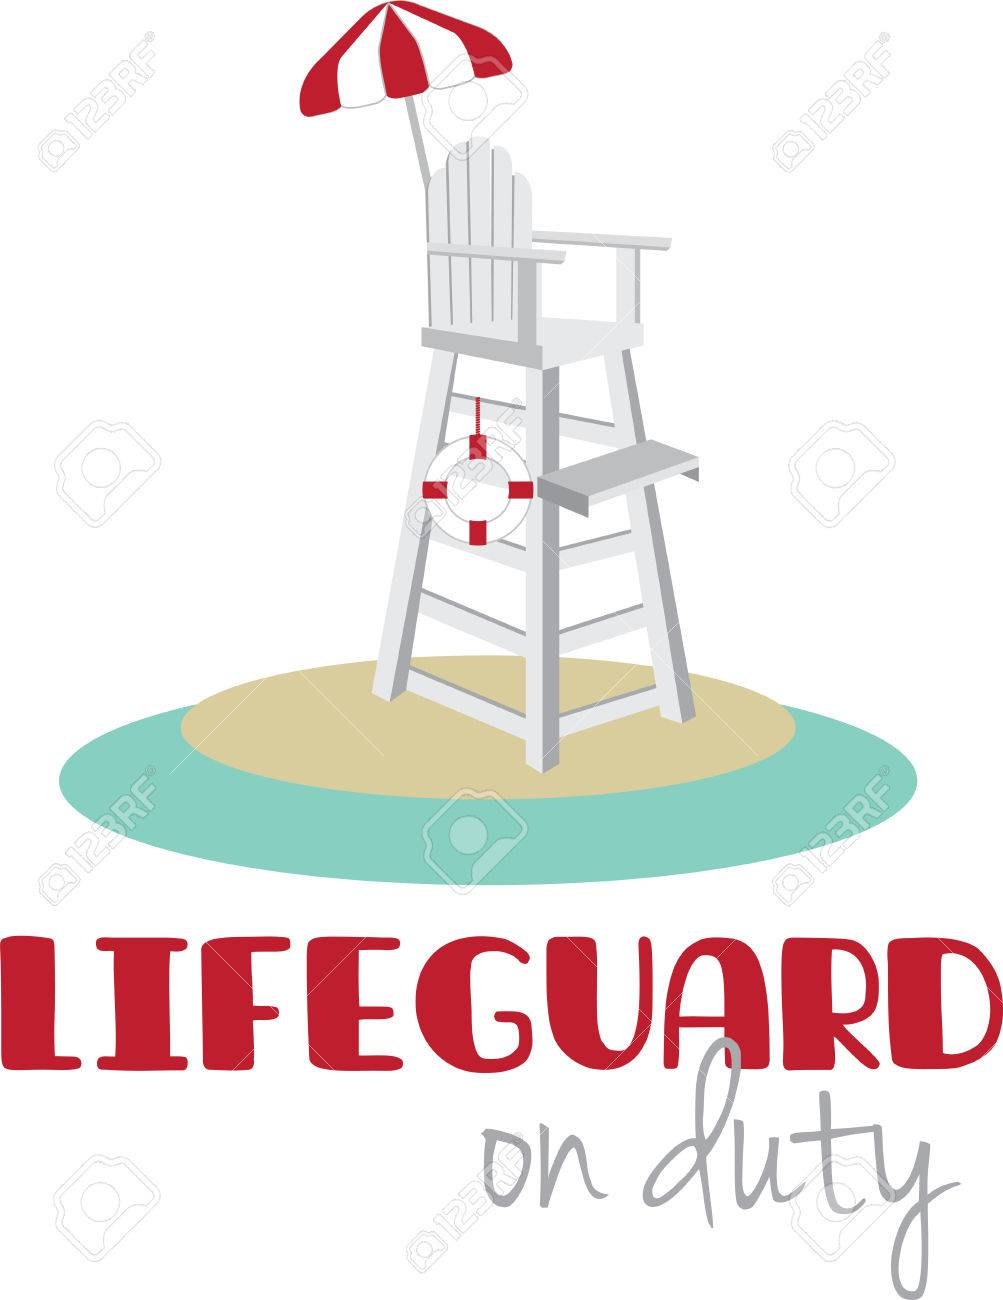 Lifeguard chair cartoon - Tall Lifeguard Chair With A Red And White Umbrella Stock Vector 41241320